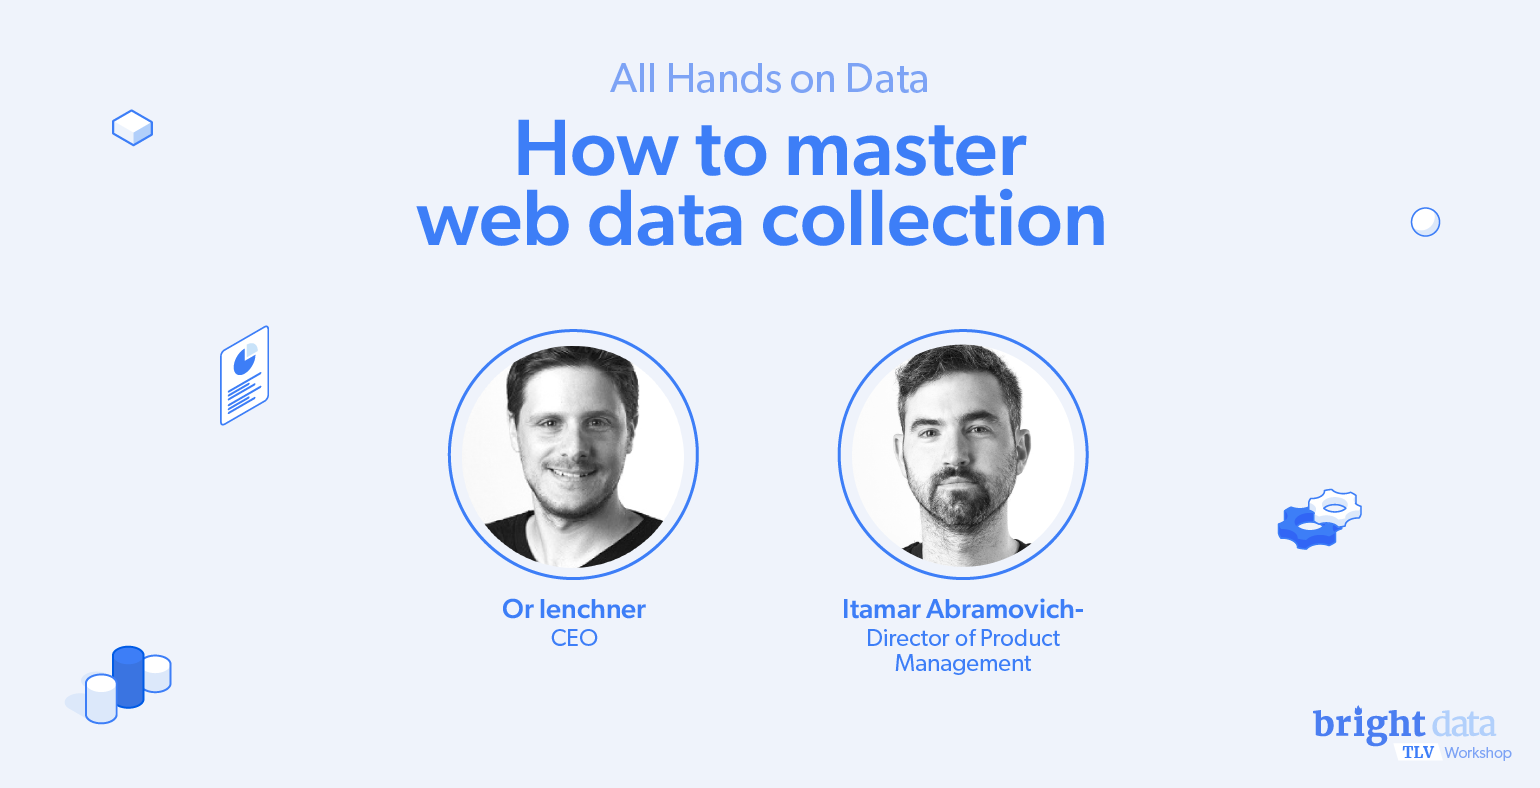 All Hands On Data How To Master web Data Collection | Or Lenchner CEO and Itamar Abramovich Director of Product Management - blue color graphic with settings and graph widget icons